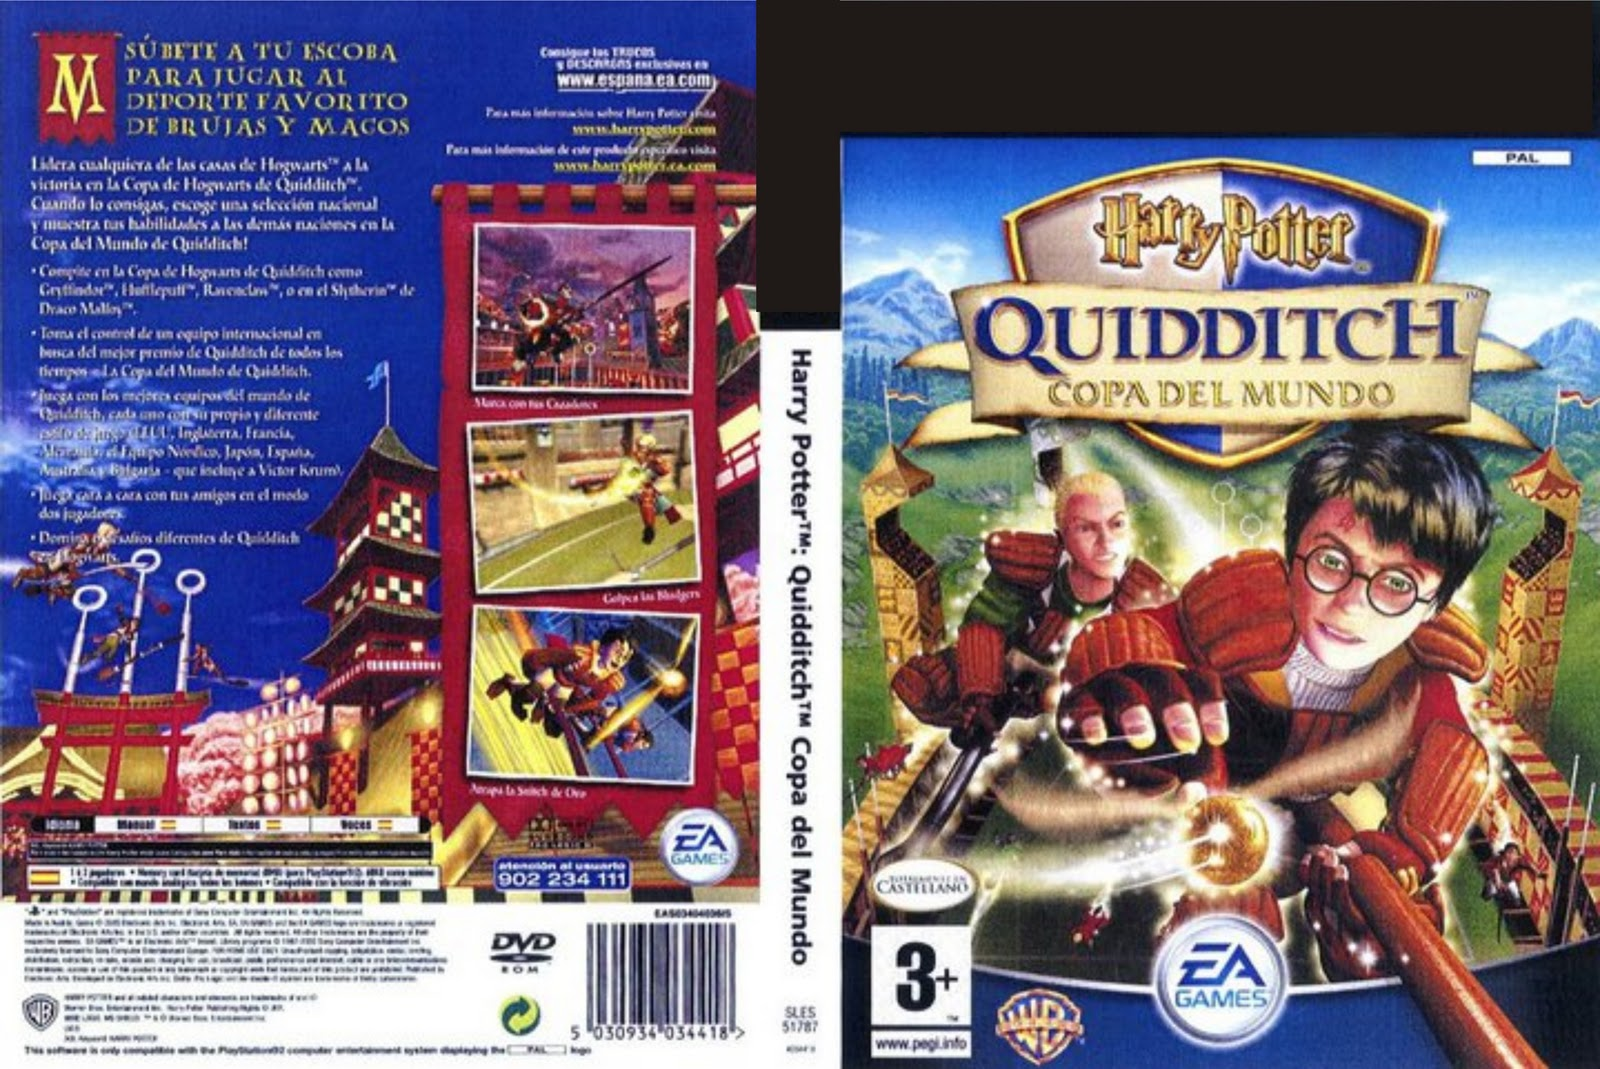 Gametime Juegos Harry Potter Quidditch World Cup